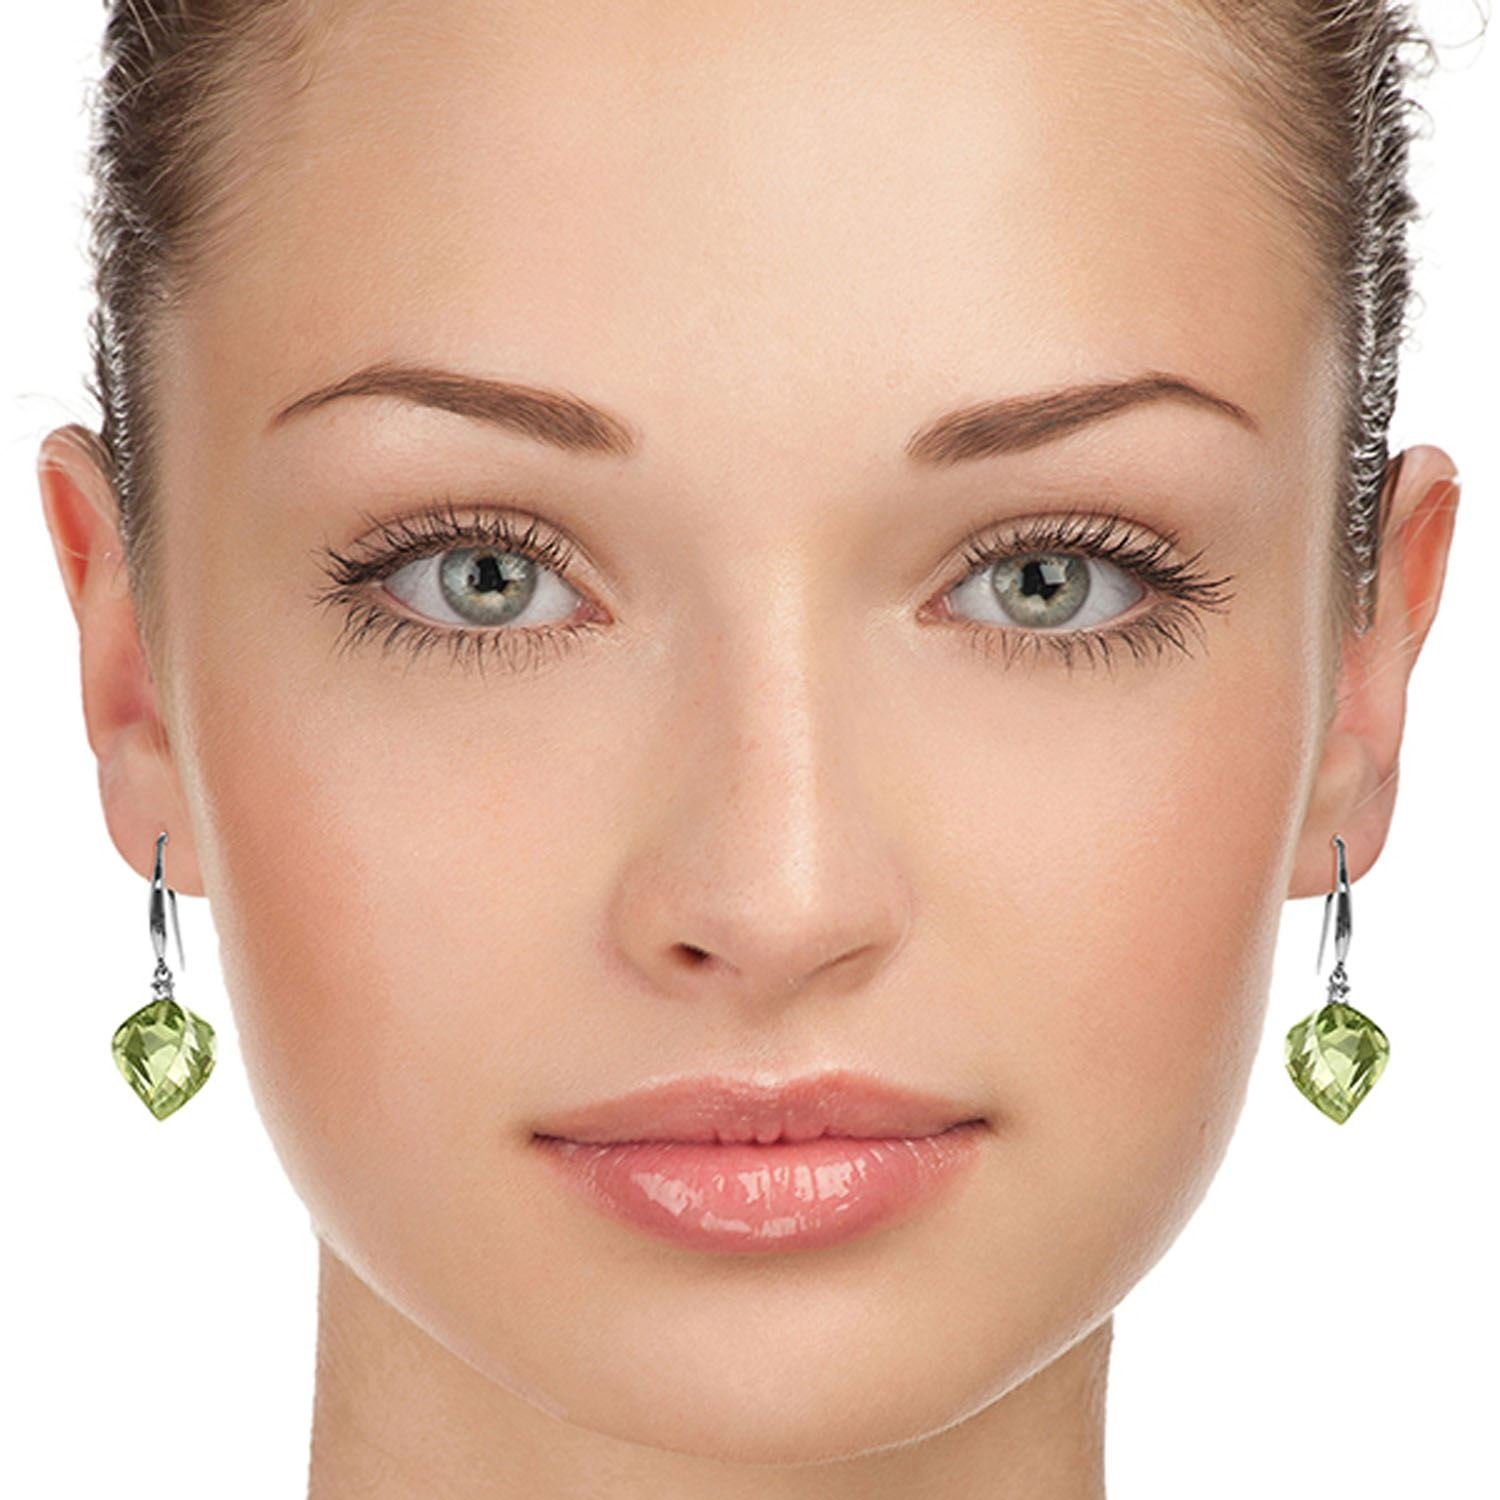 ALARRI 26.1 CTW 14K Solid White Gold Found My Love Green Amethyst Diamond Earrings by ALARRI (Image #2)